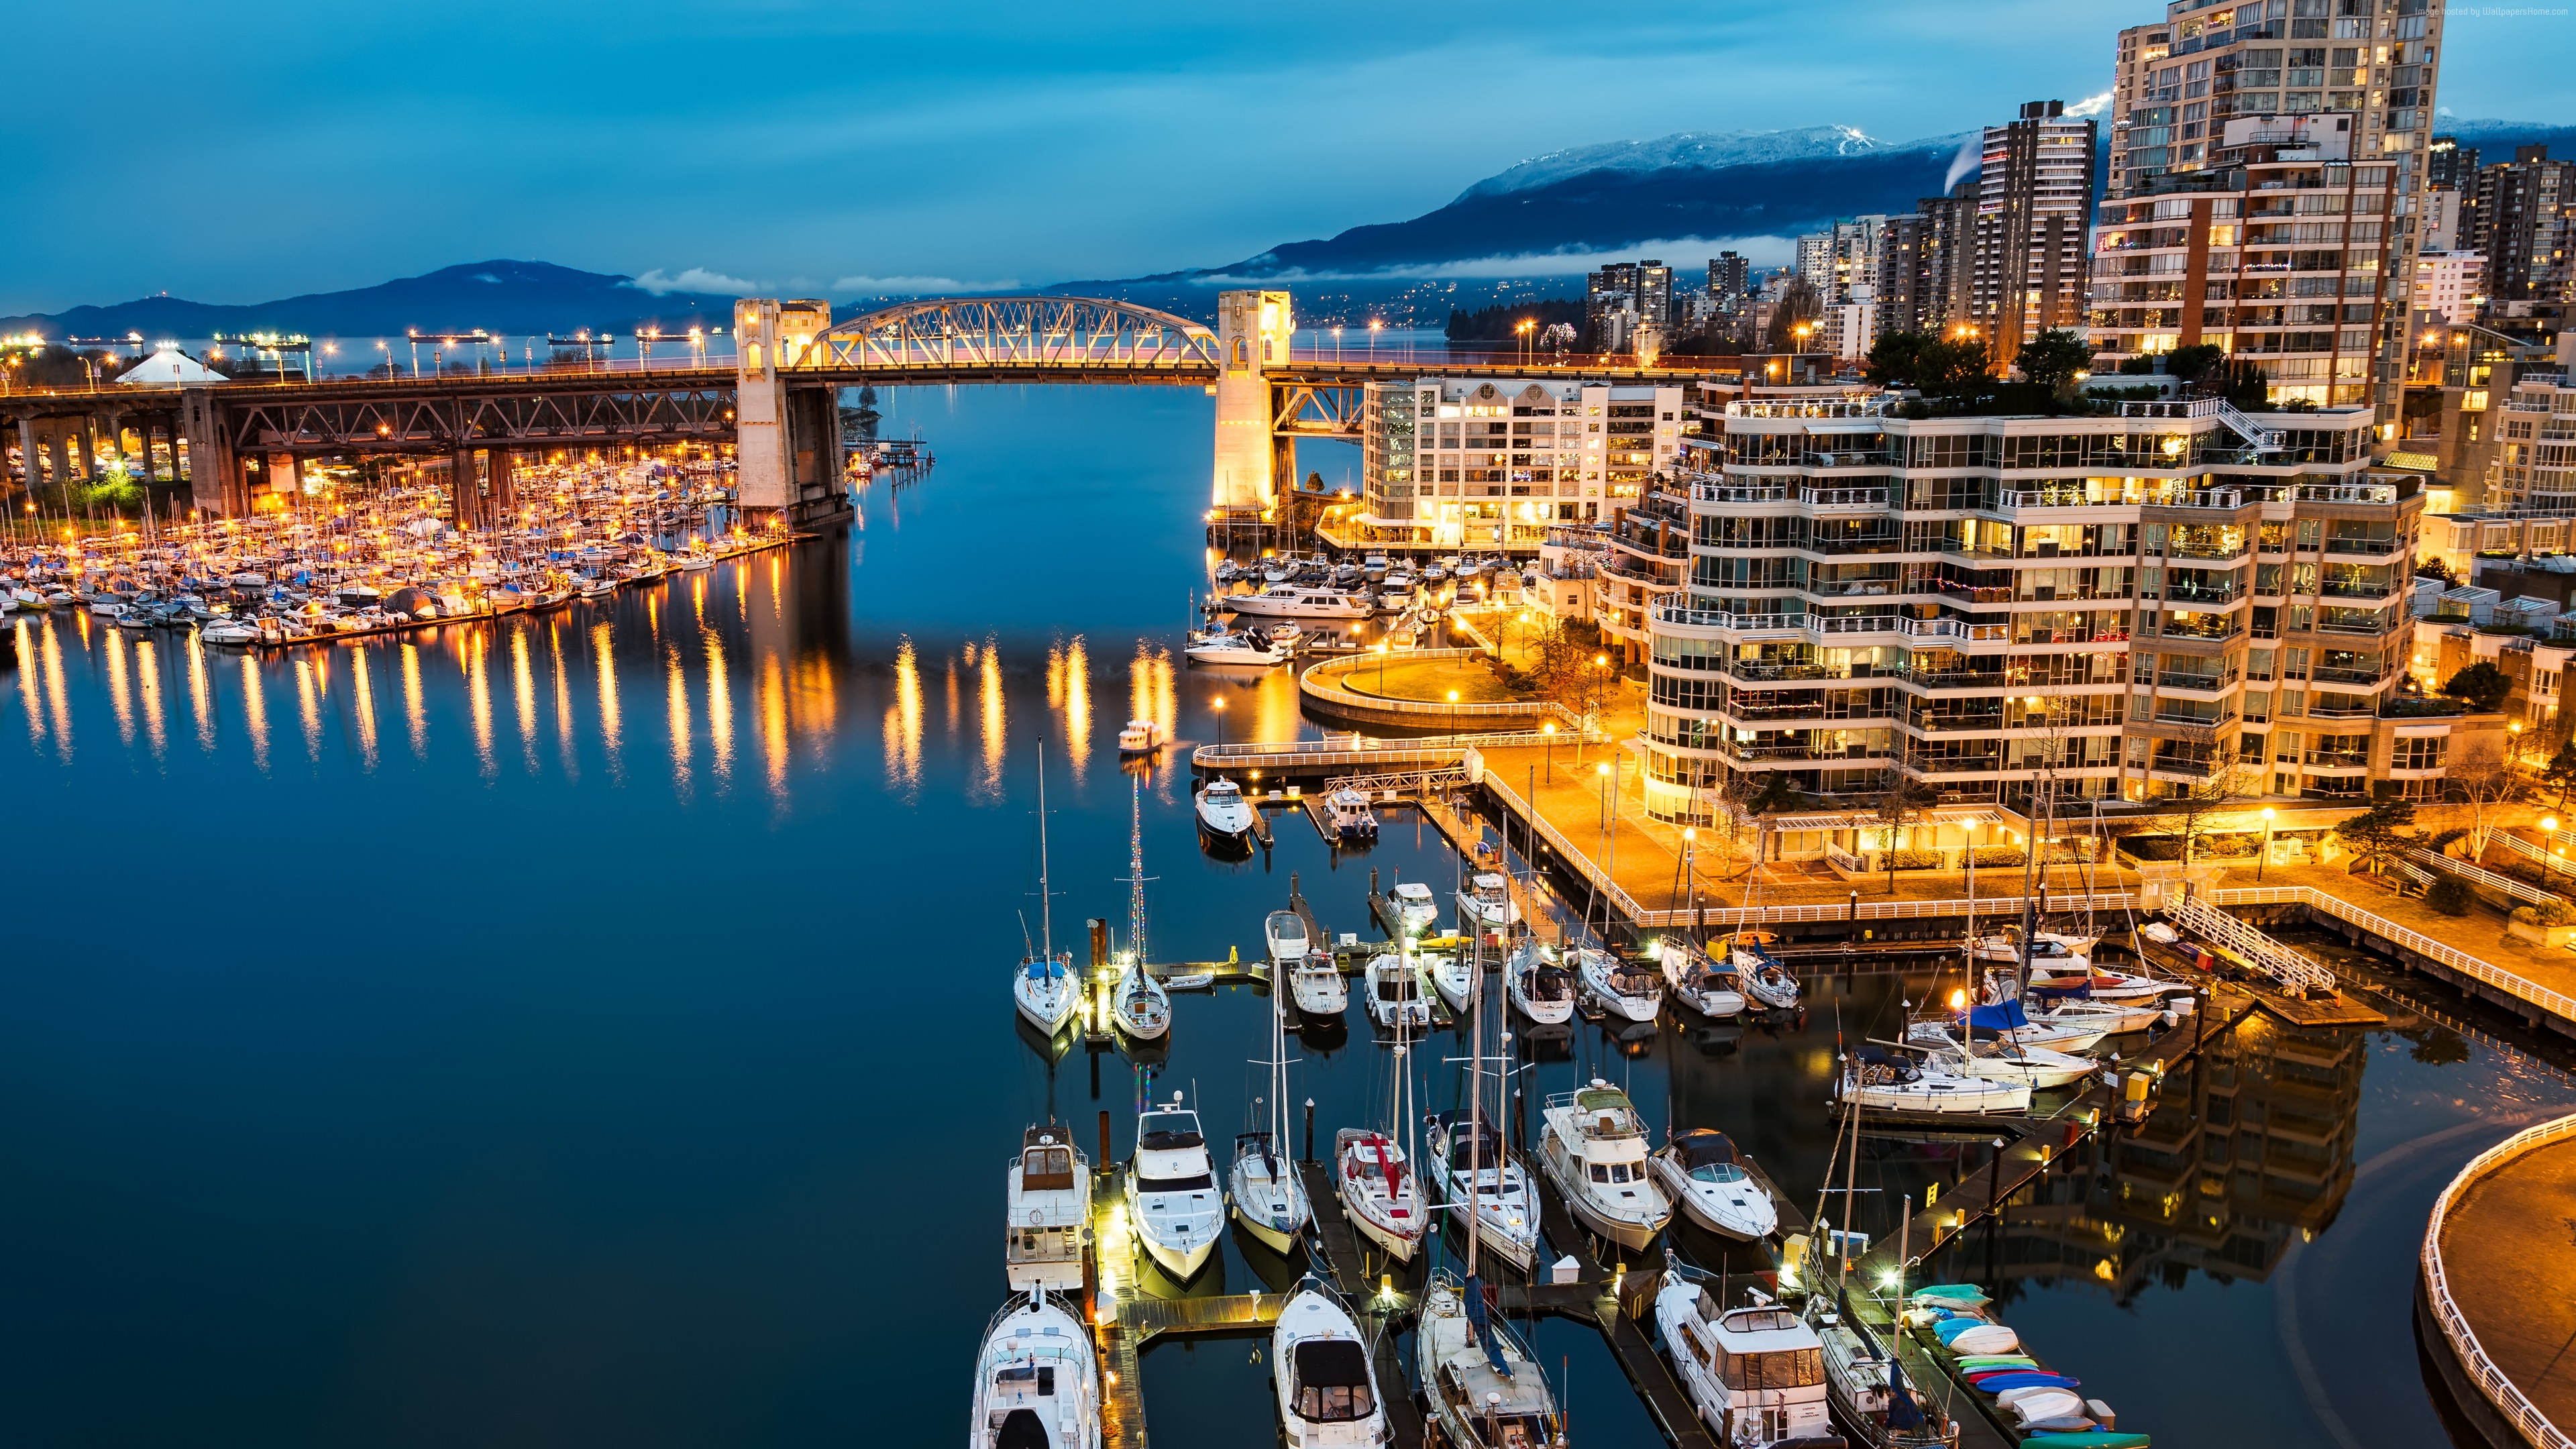 Wallpaper Vancouver, Granville, Island, Canada, night, Morning, lights, boats, blue, water, sea, travel, Architecture